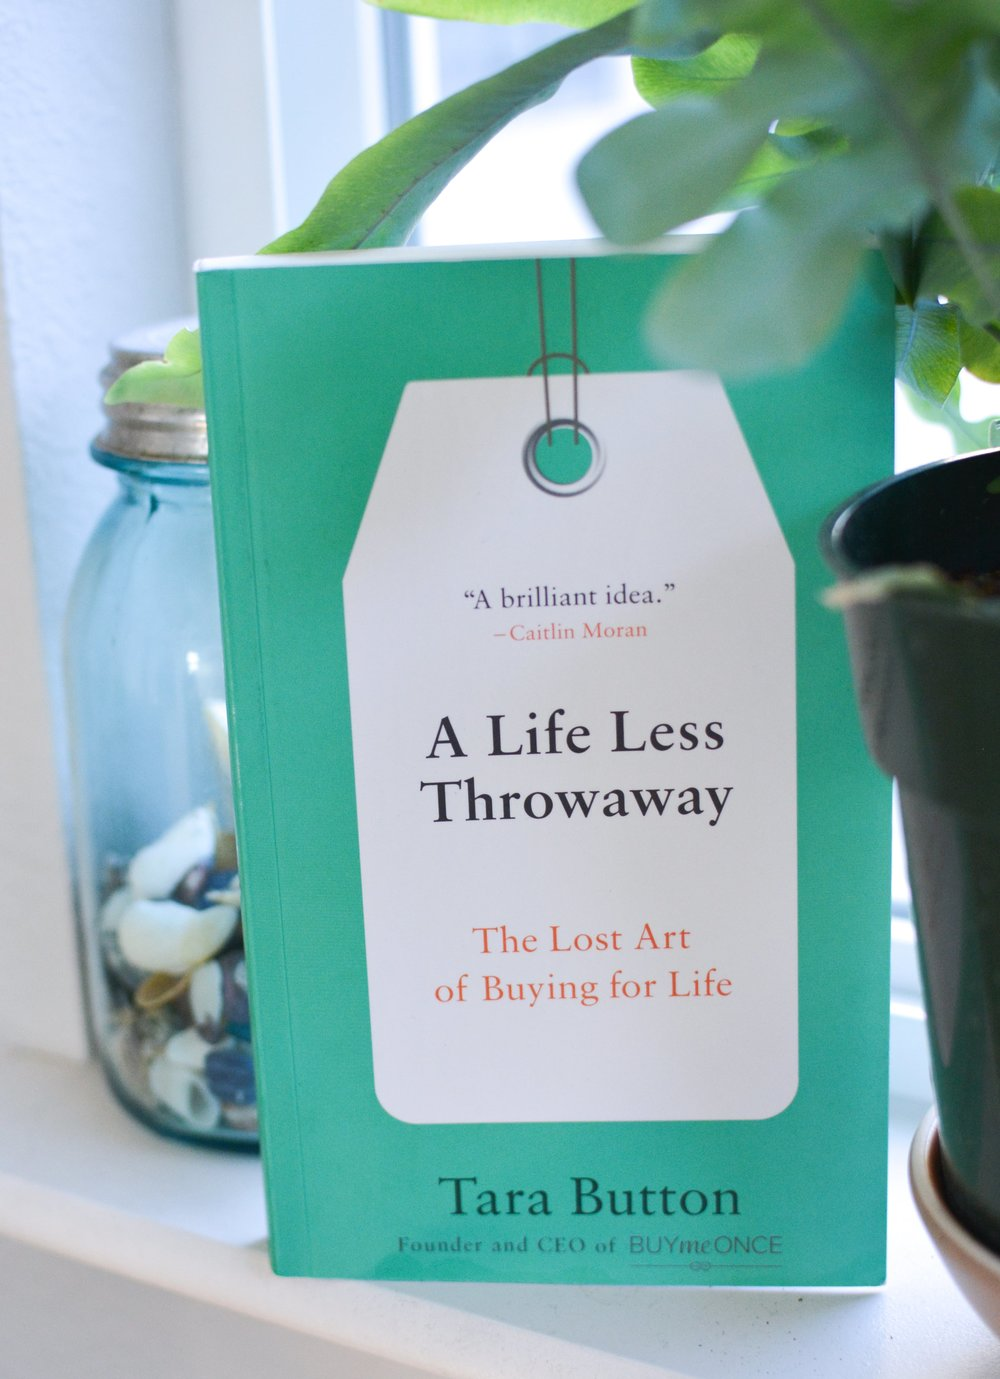 life less throwaway (1 of 1)-min.jpg